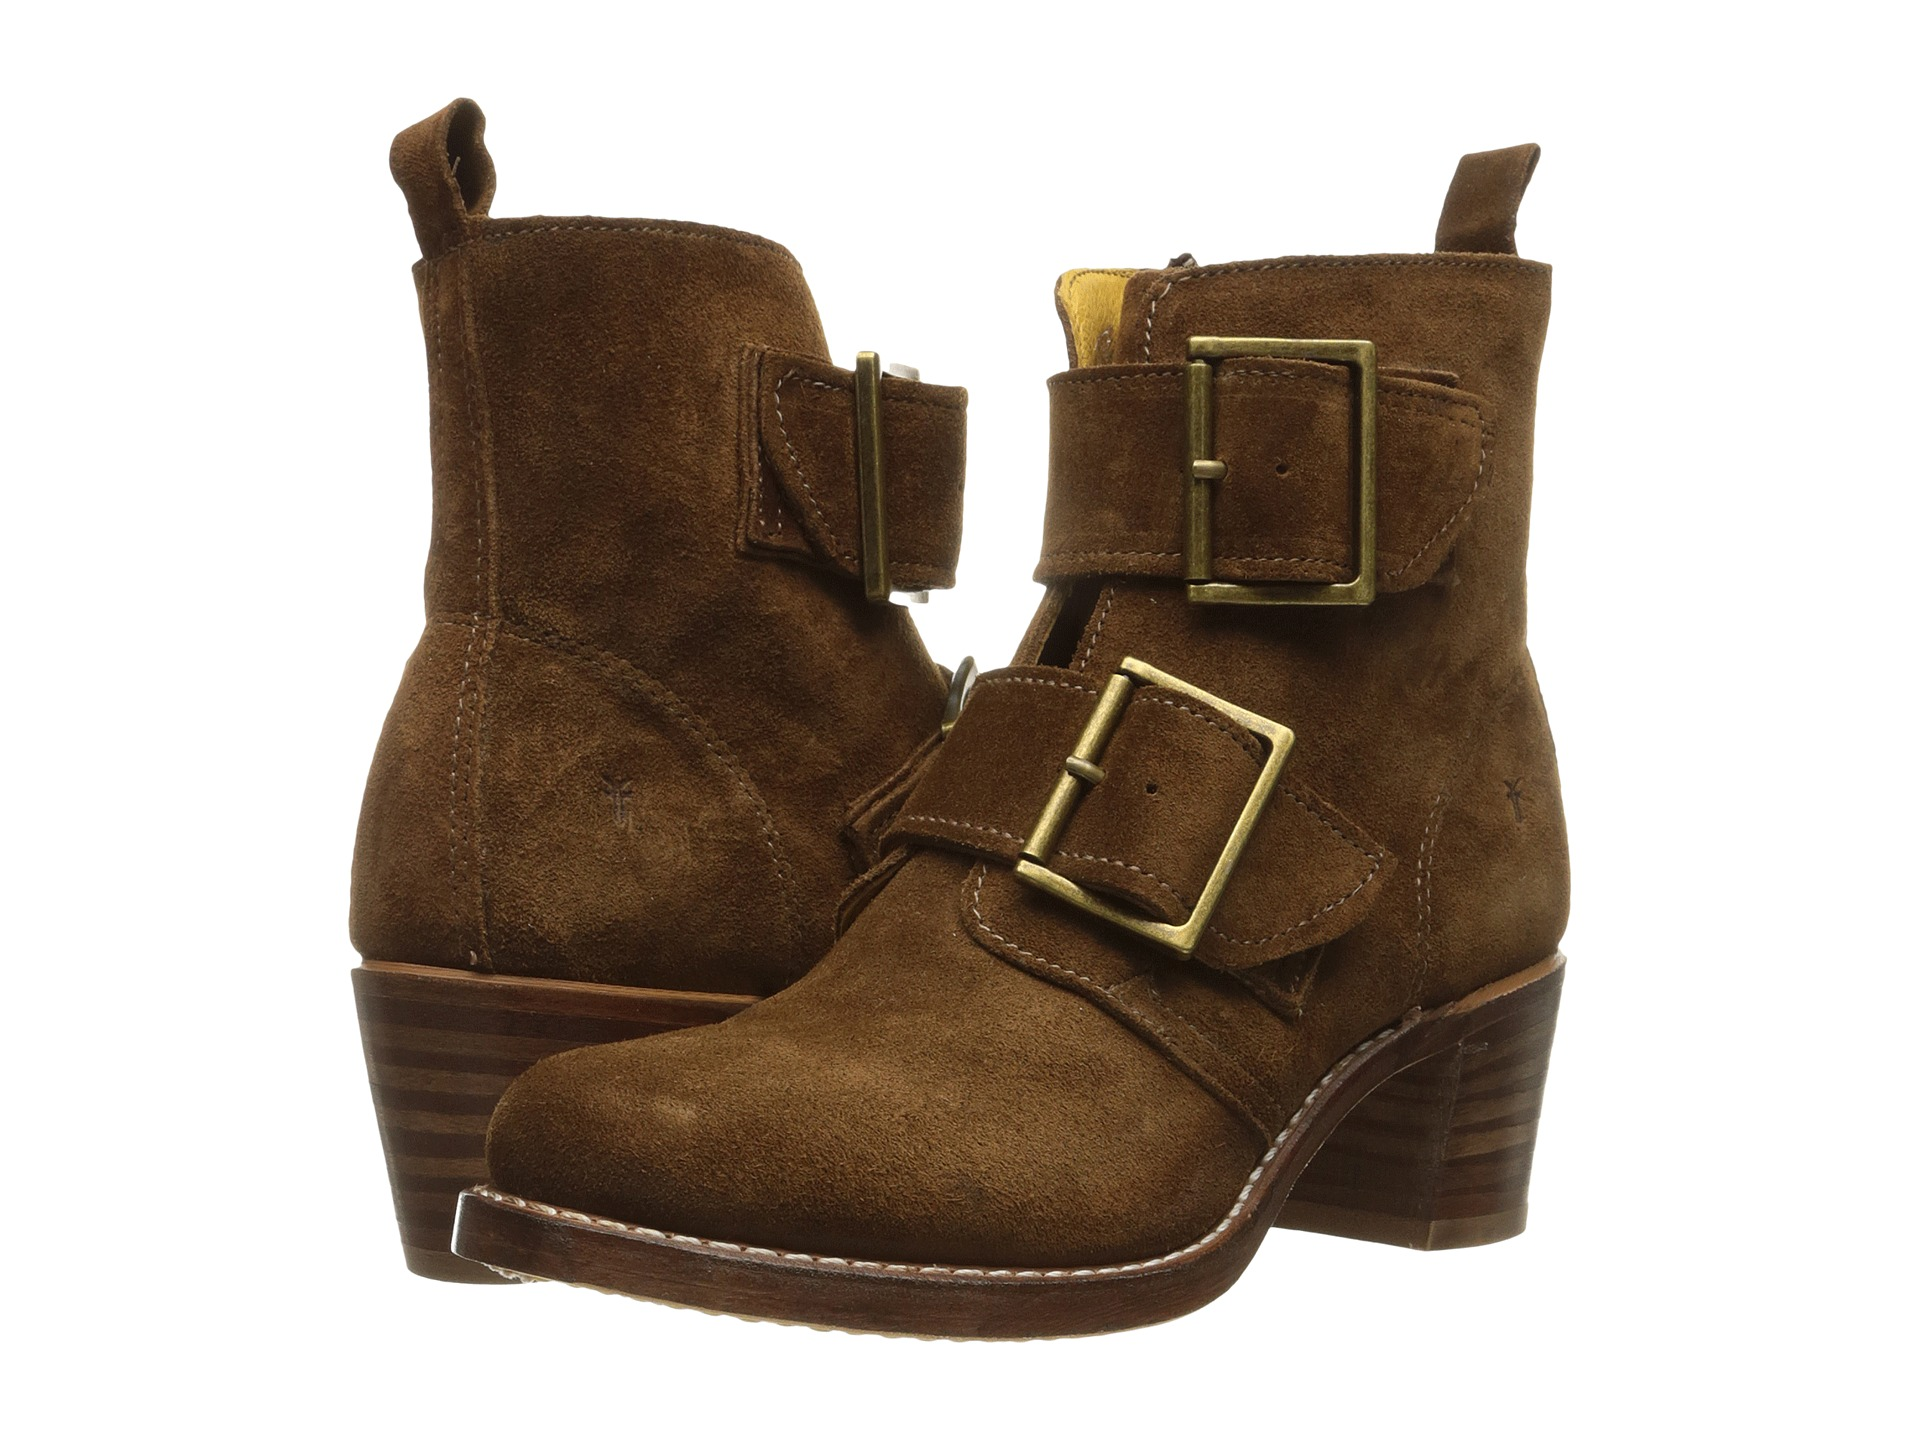 Frye Sabrina Double Buckle Zappos Com Free Shipping Both